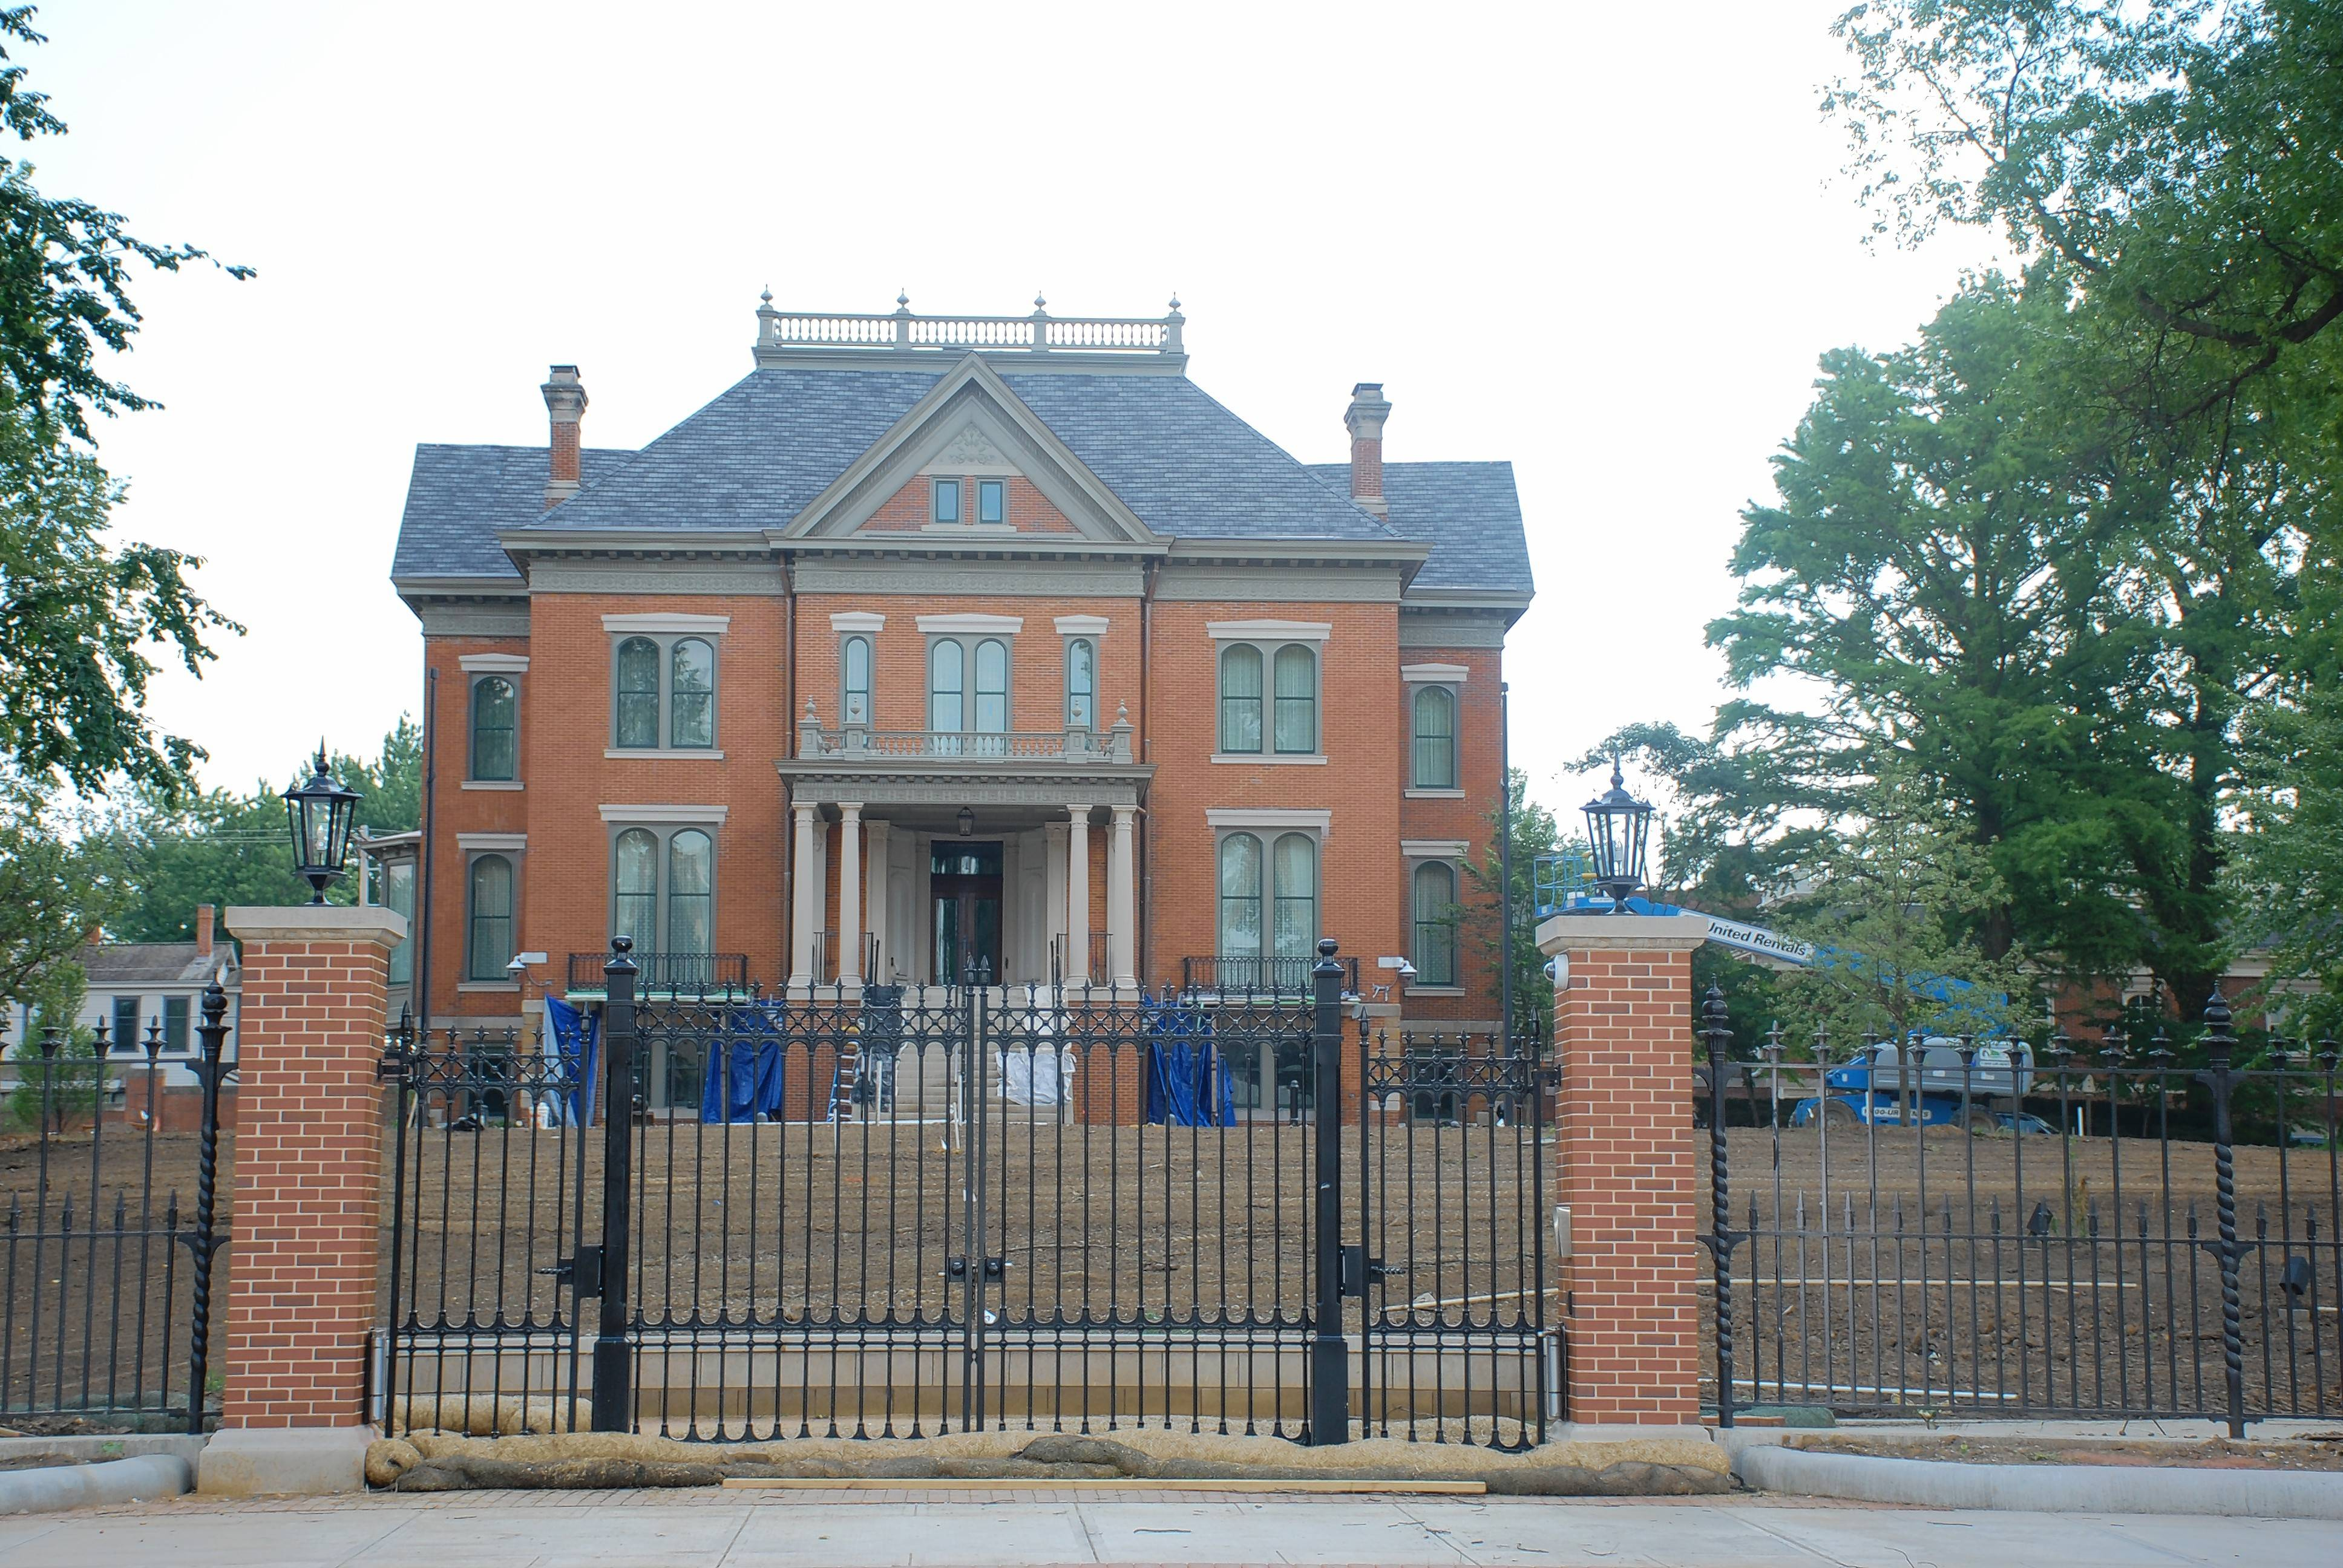 The newly restored Italianate-style Governor's Mansion is ready to host the people of Illinois once again, beginning July 14. Finishing touches are still in progress on the landscaping renovation.